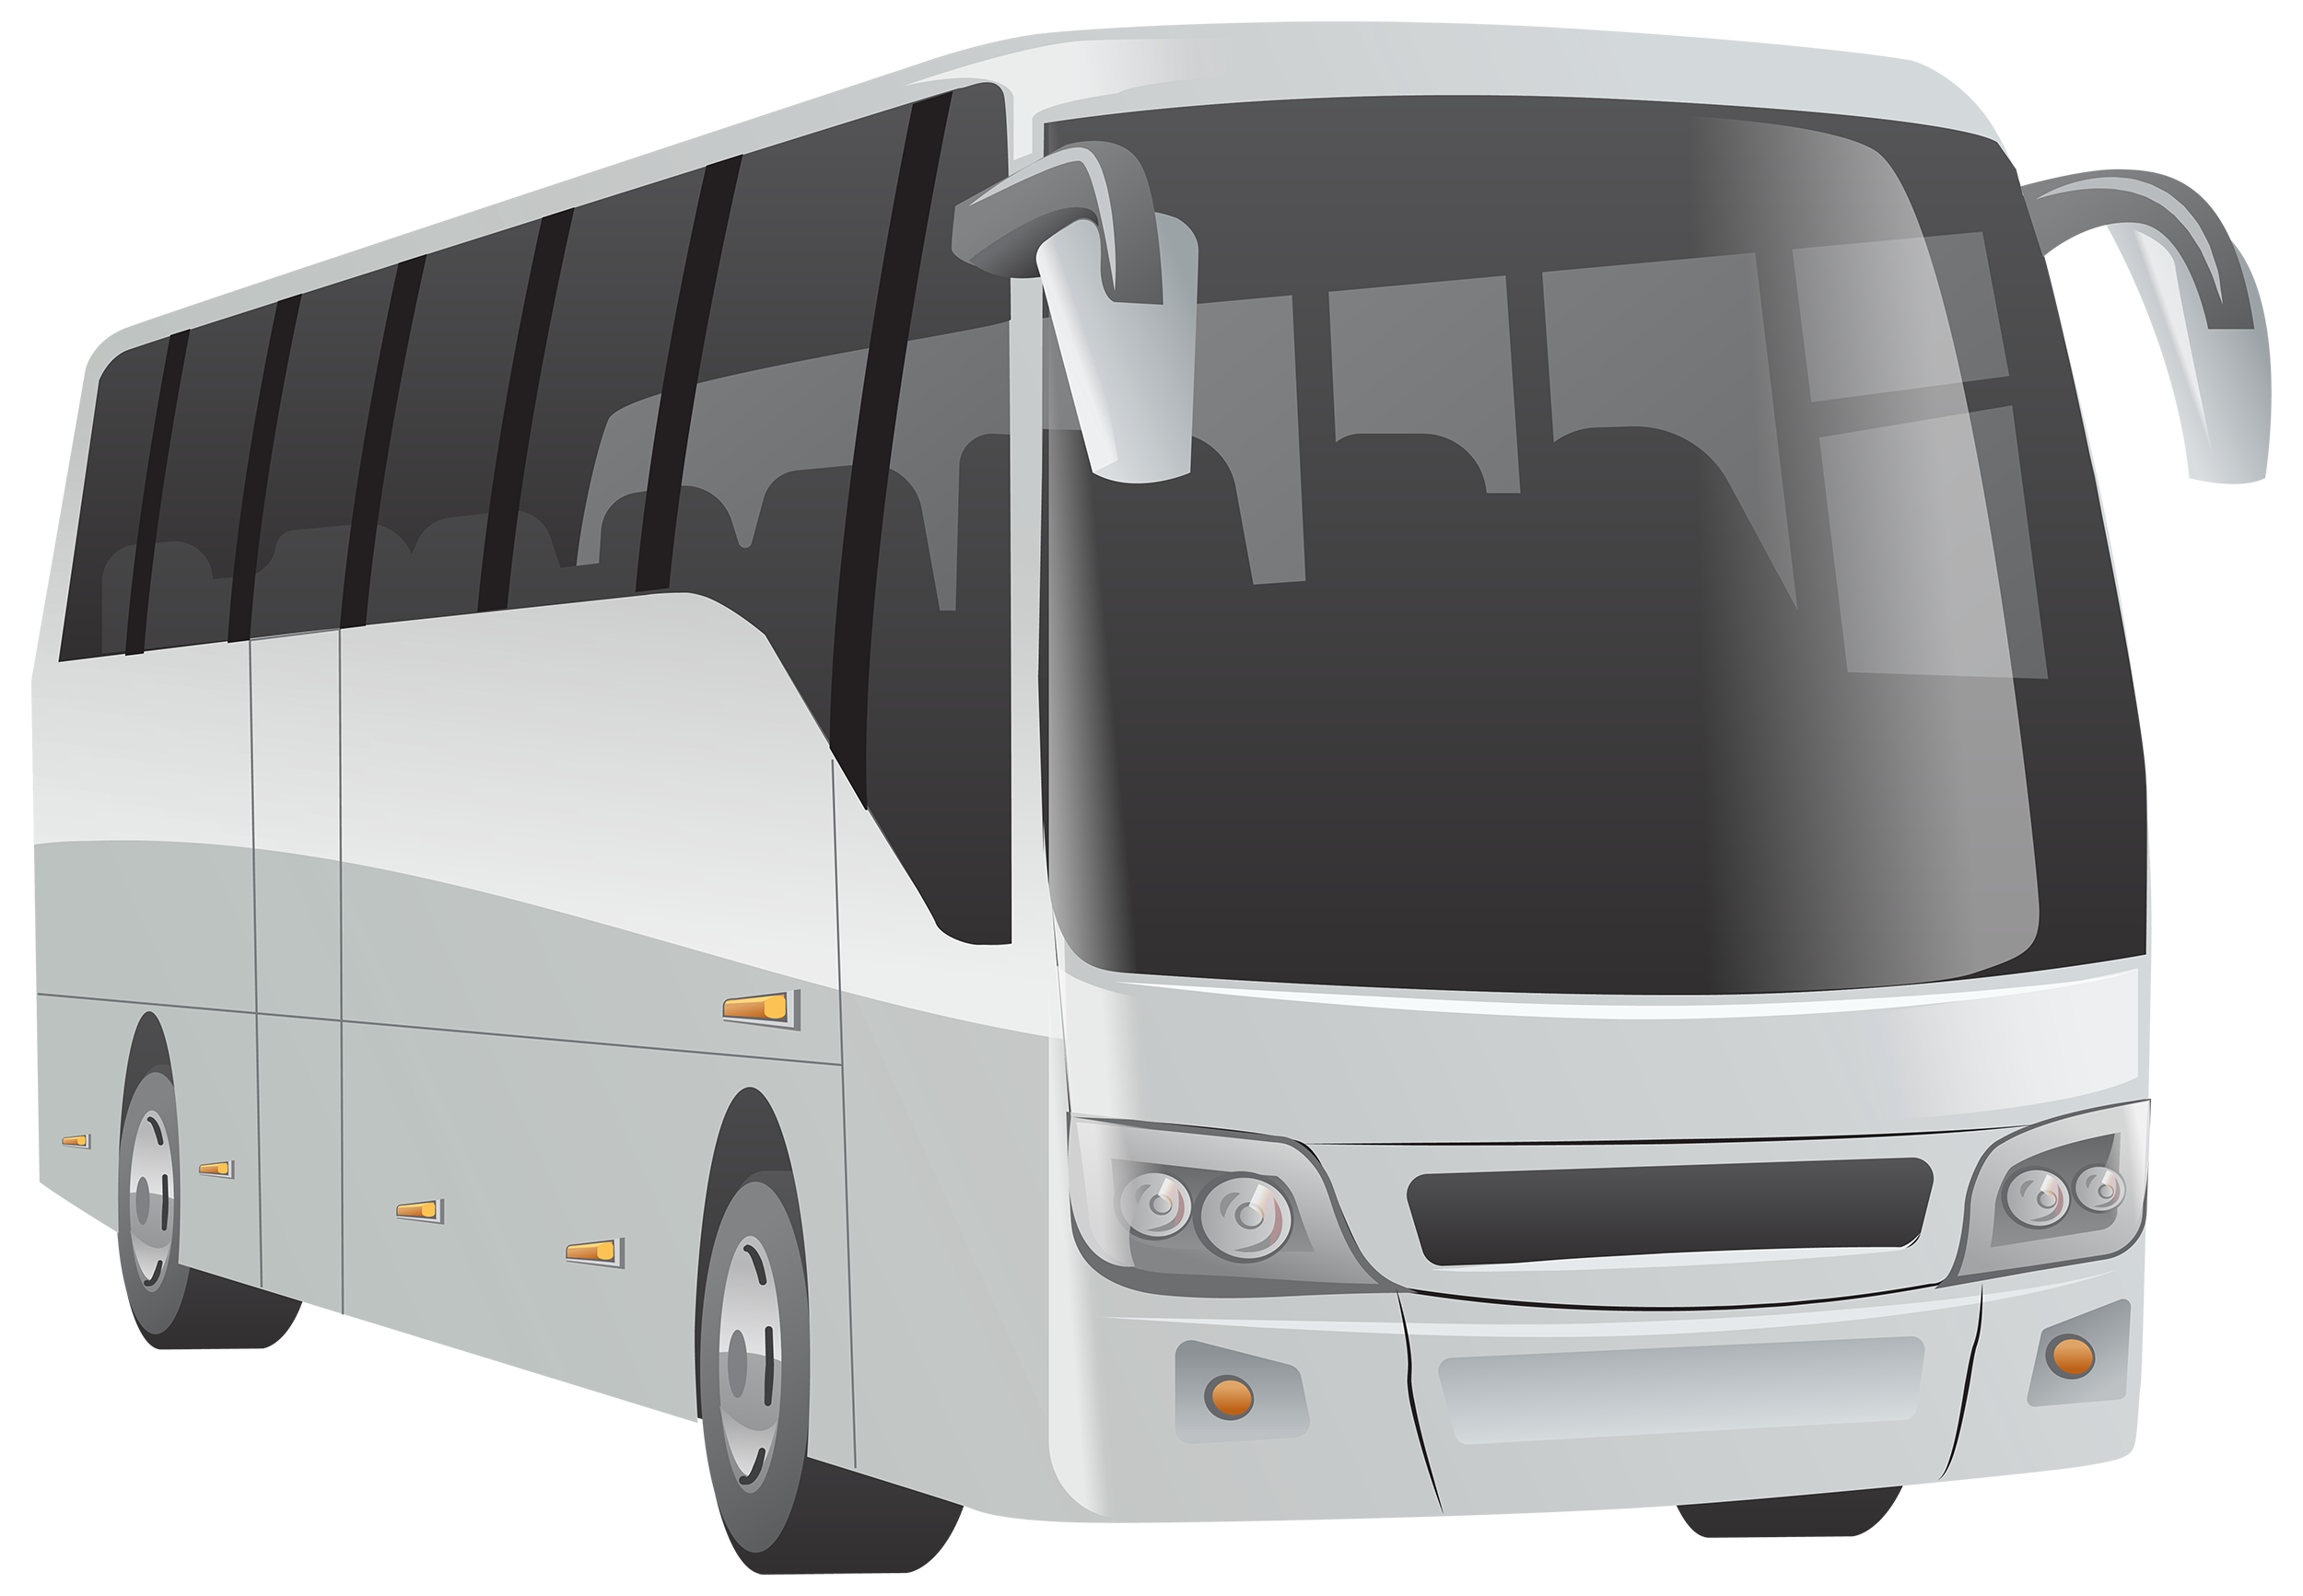 Picture clipart bus. White png best web